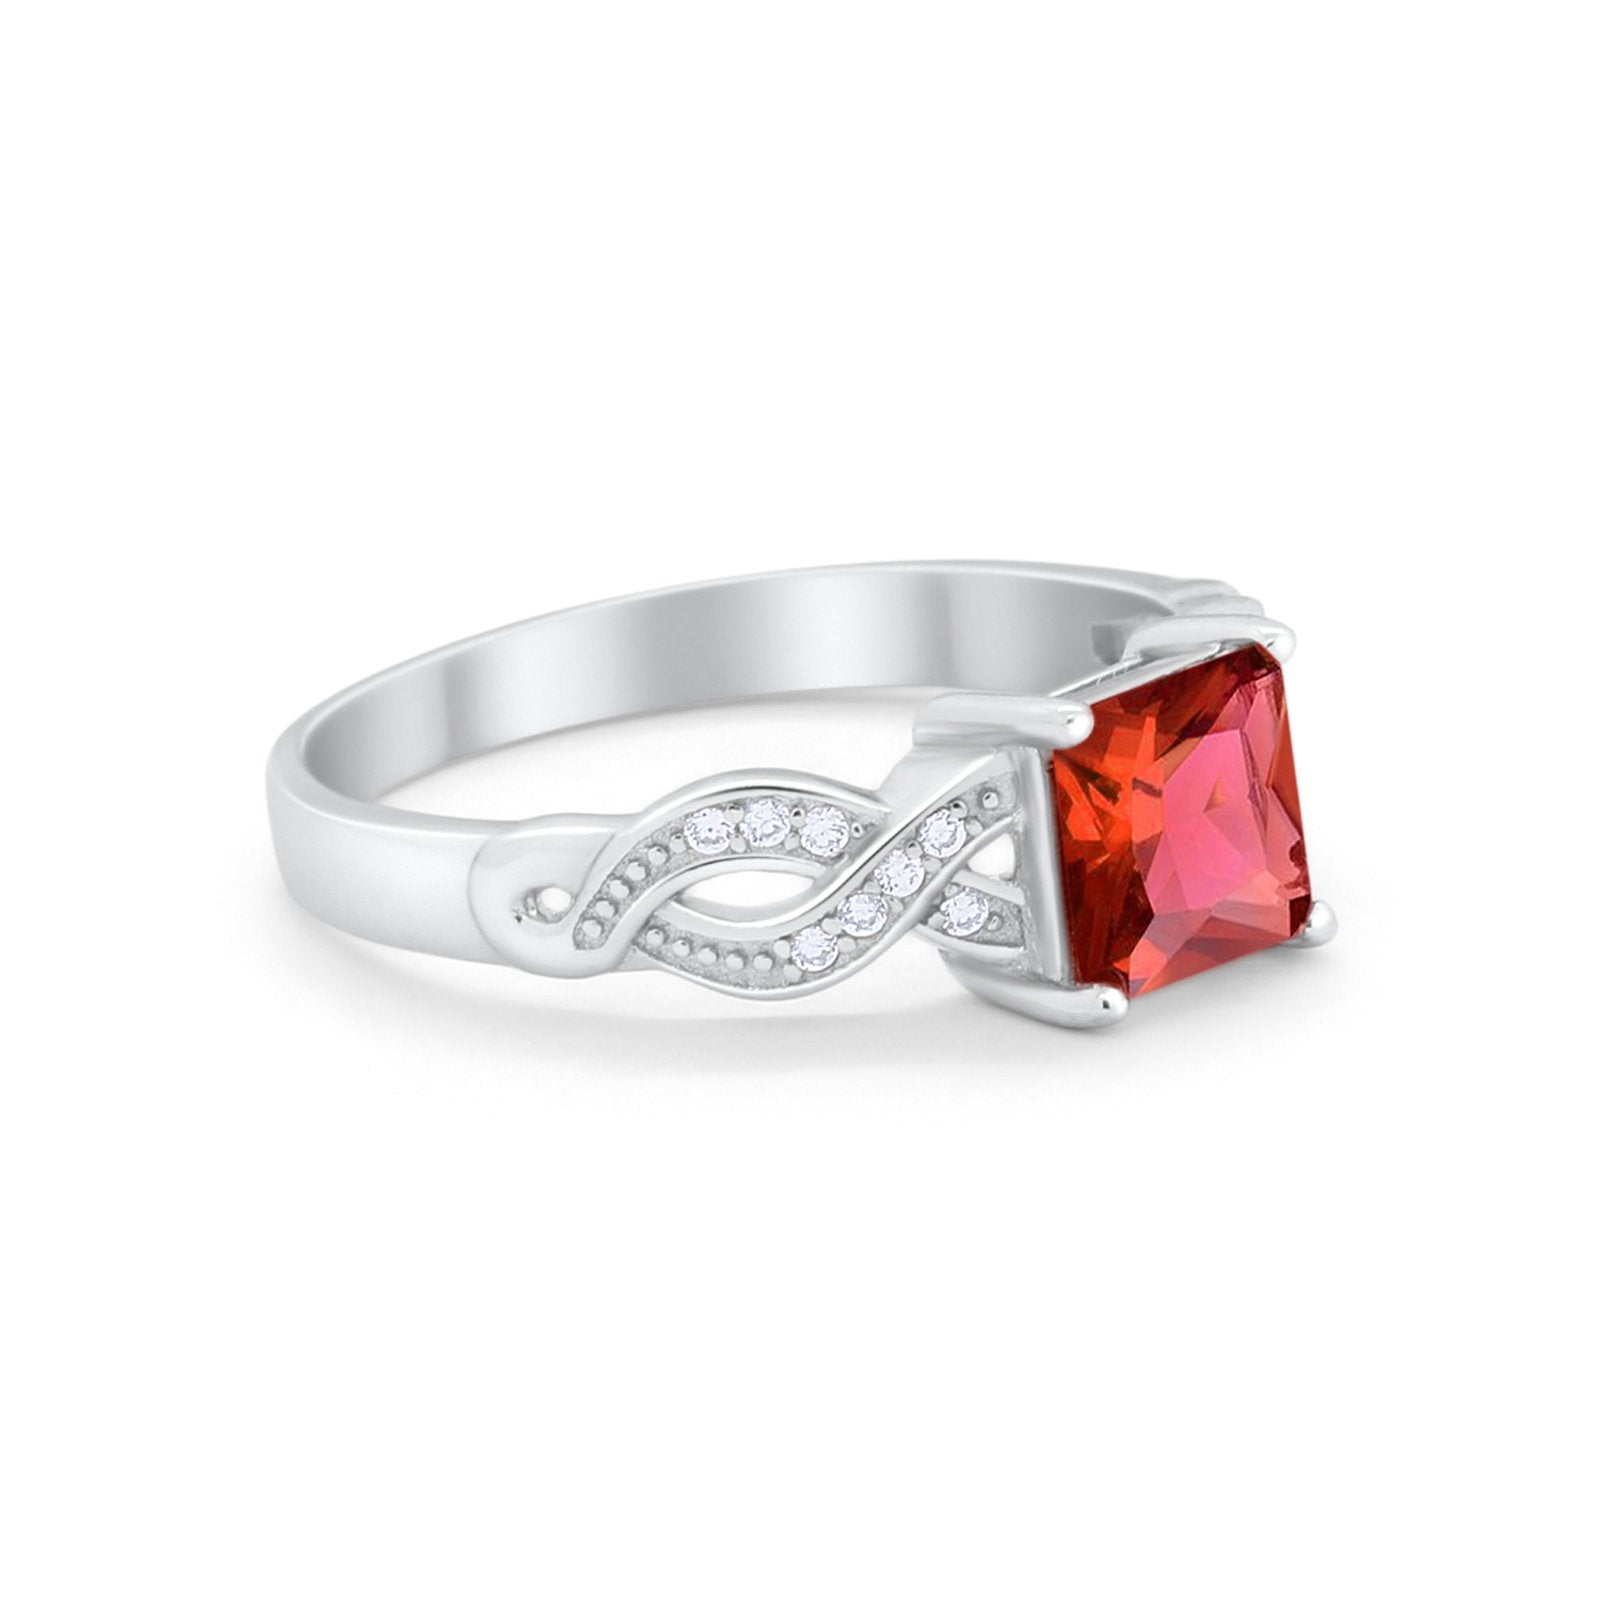 Solitaire Infinity Shank Ring Princess Cut Simulated Garnet CZ 925 Sterling Silver